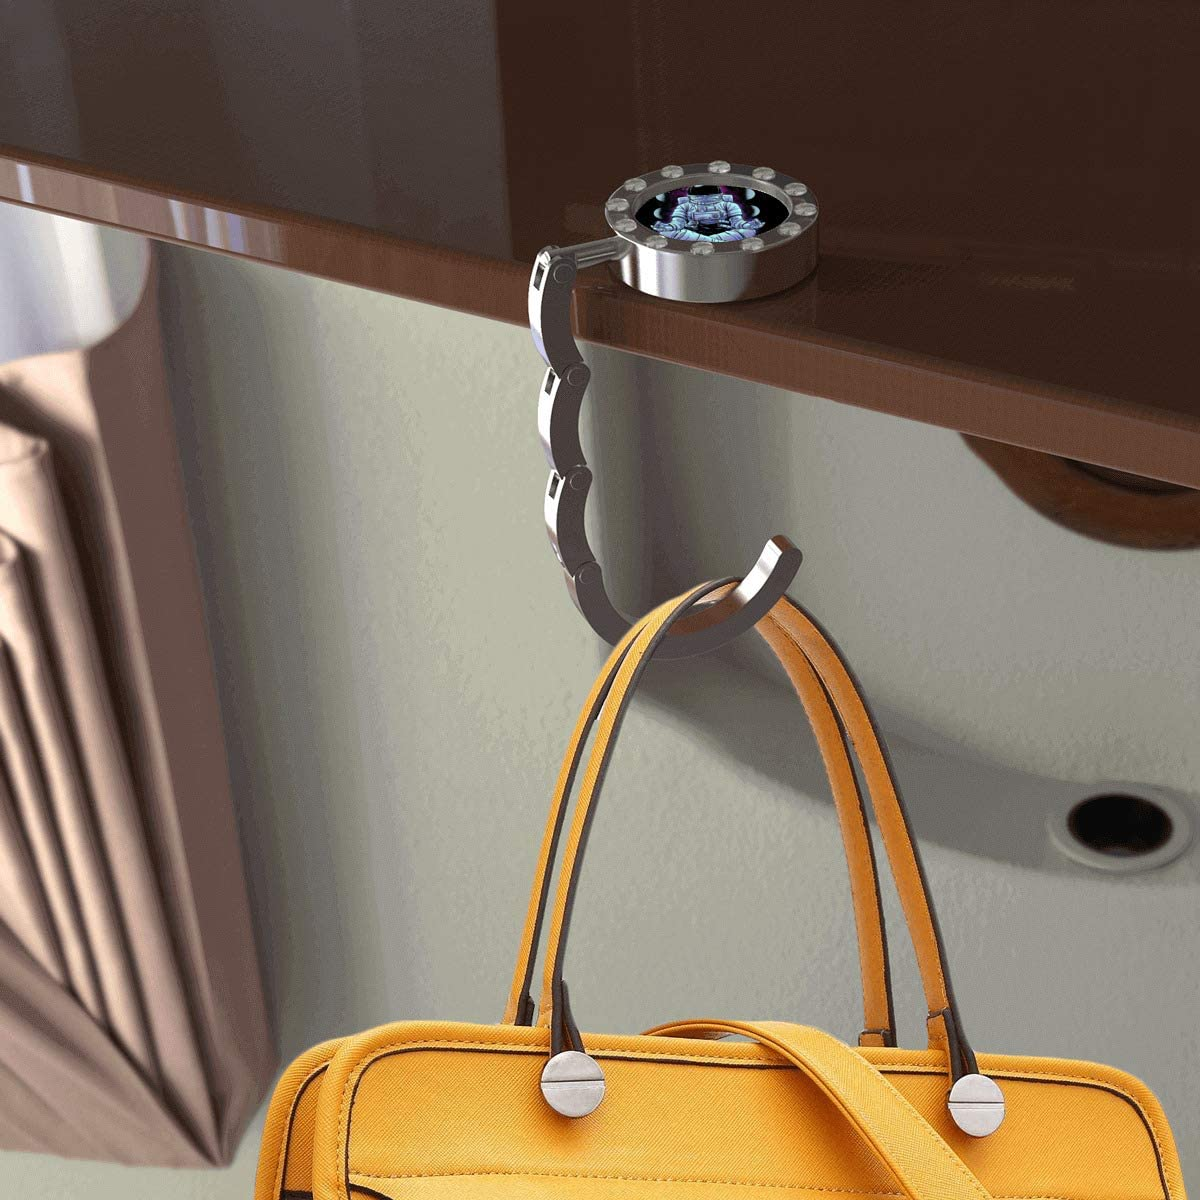 Convenient Stylish Suitable for Daily Use of Blue Mermaid Bag Hanger Round with drill Blue Mermaid Bag Hanger for Women